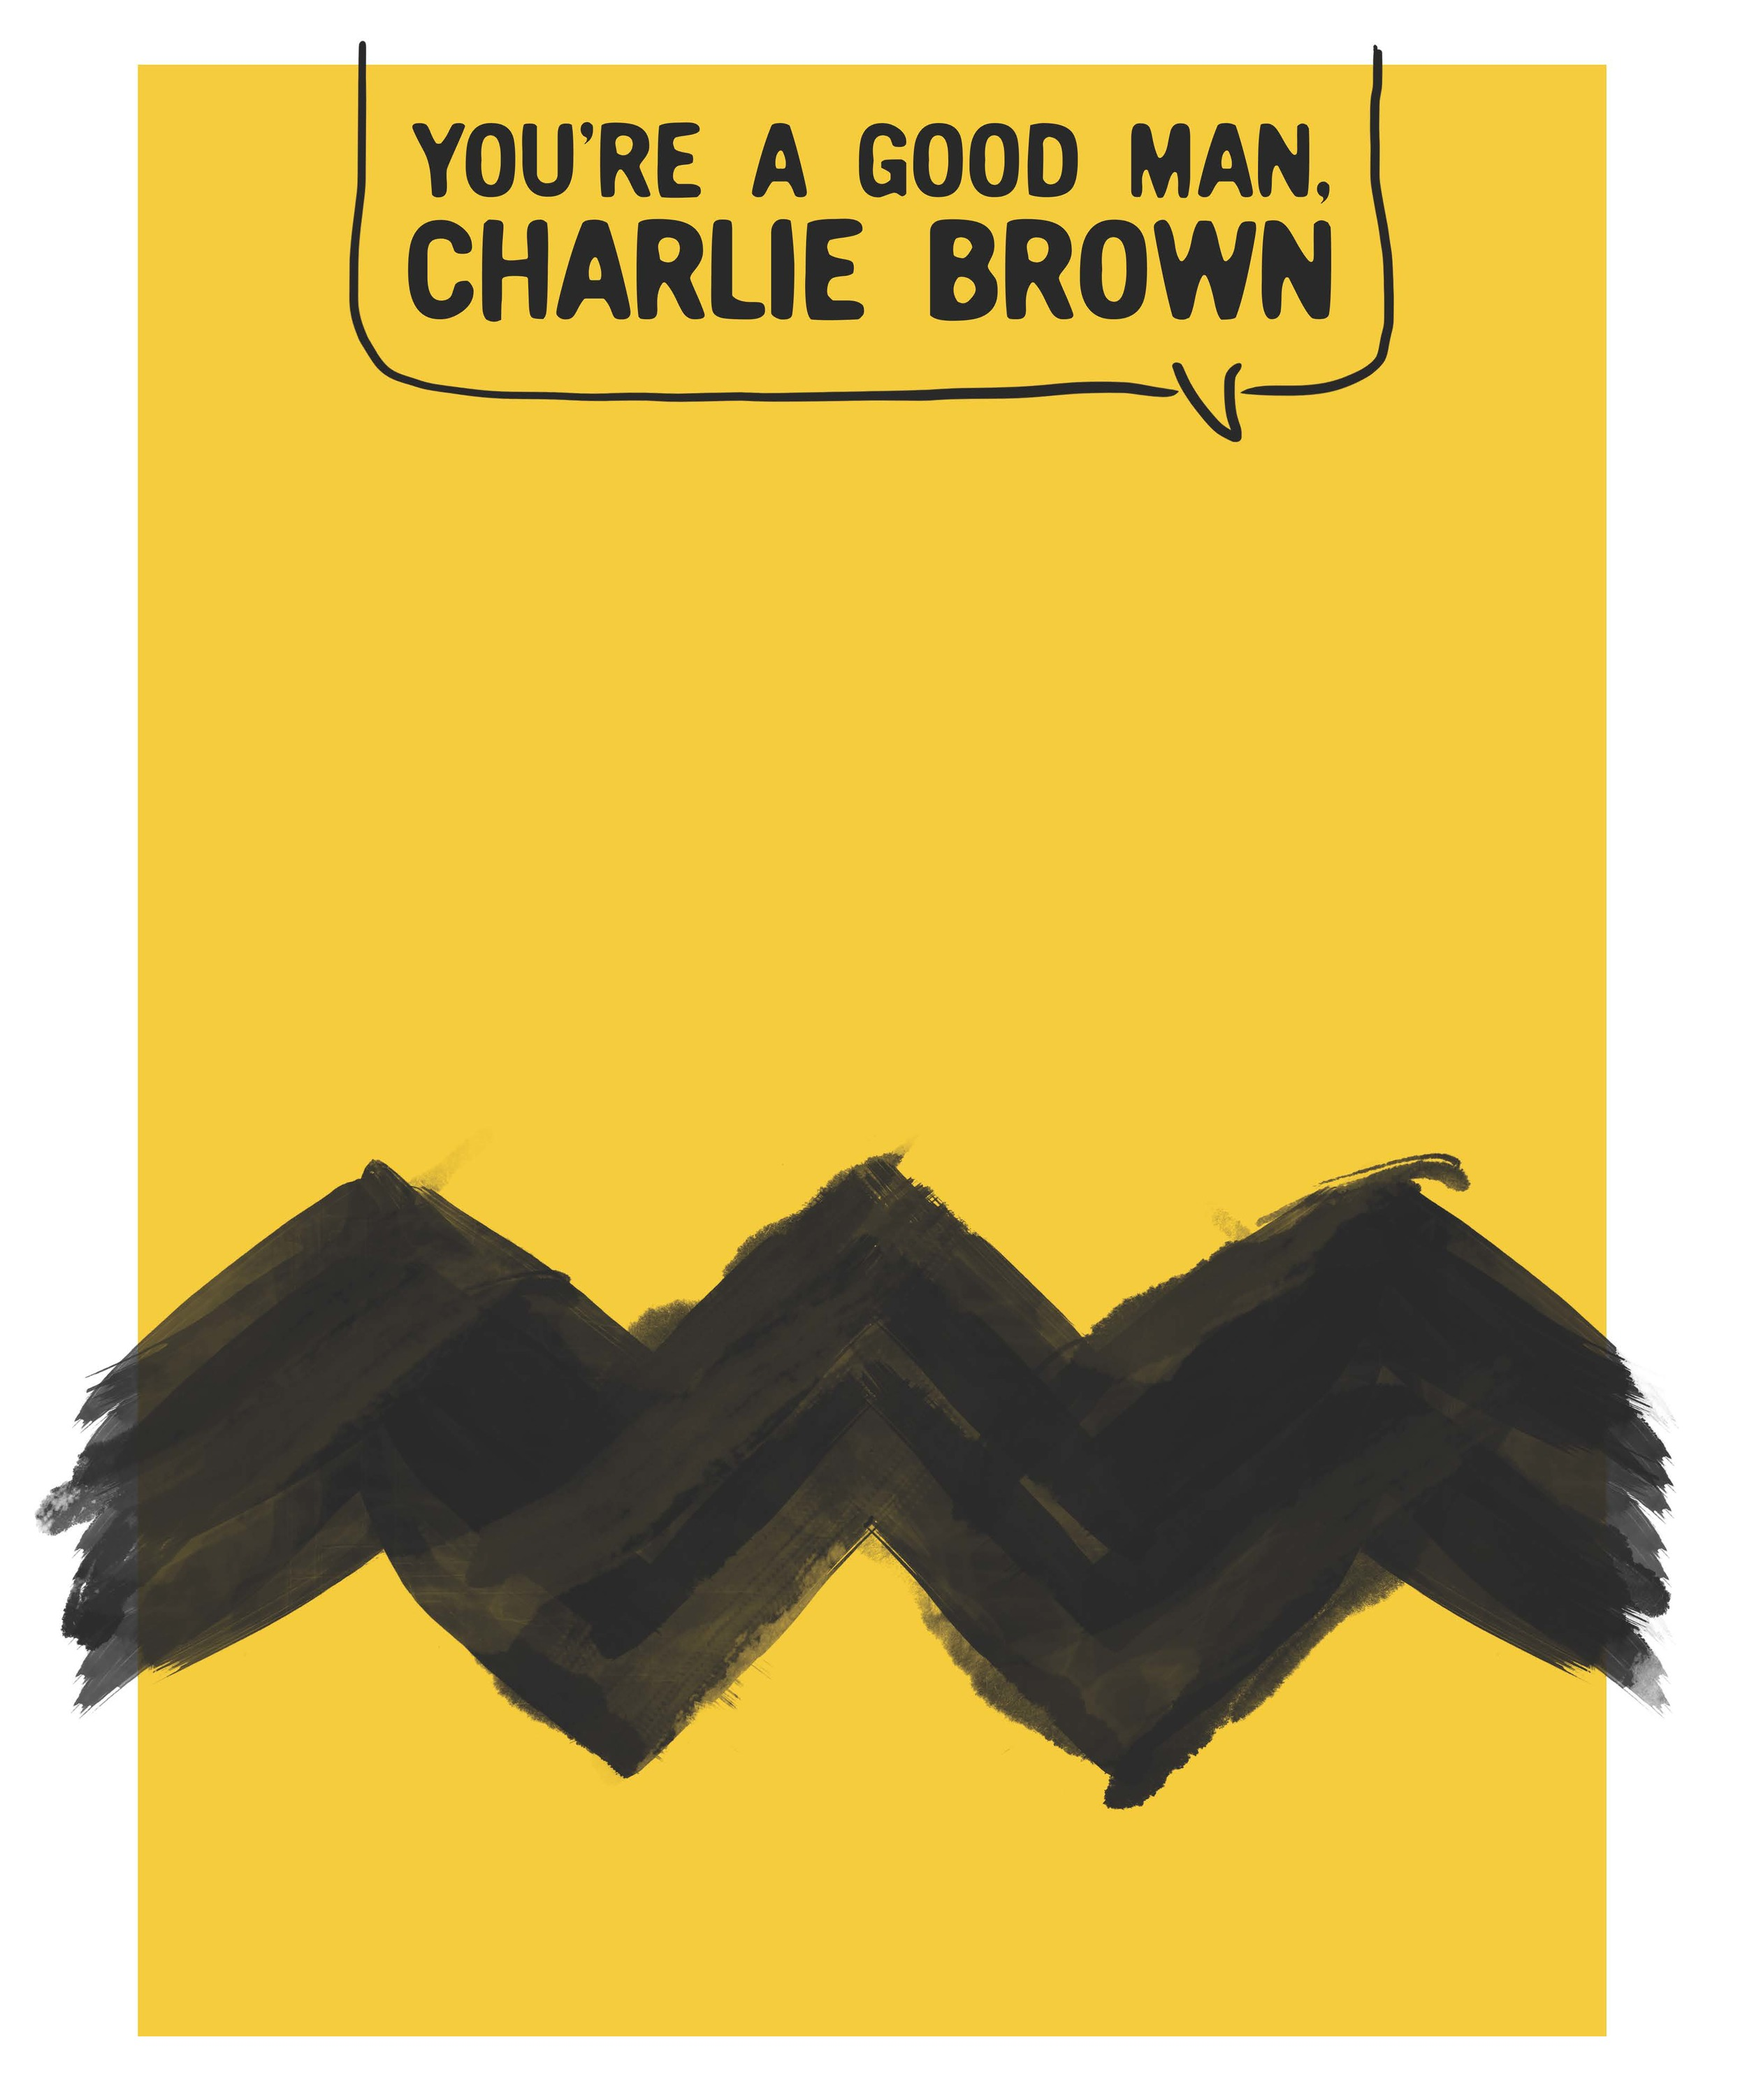 YOU'RE A GOOD MAN, CHARLIE BROWN - MAY 1-3